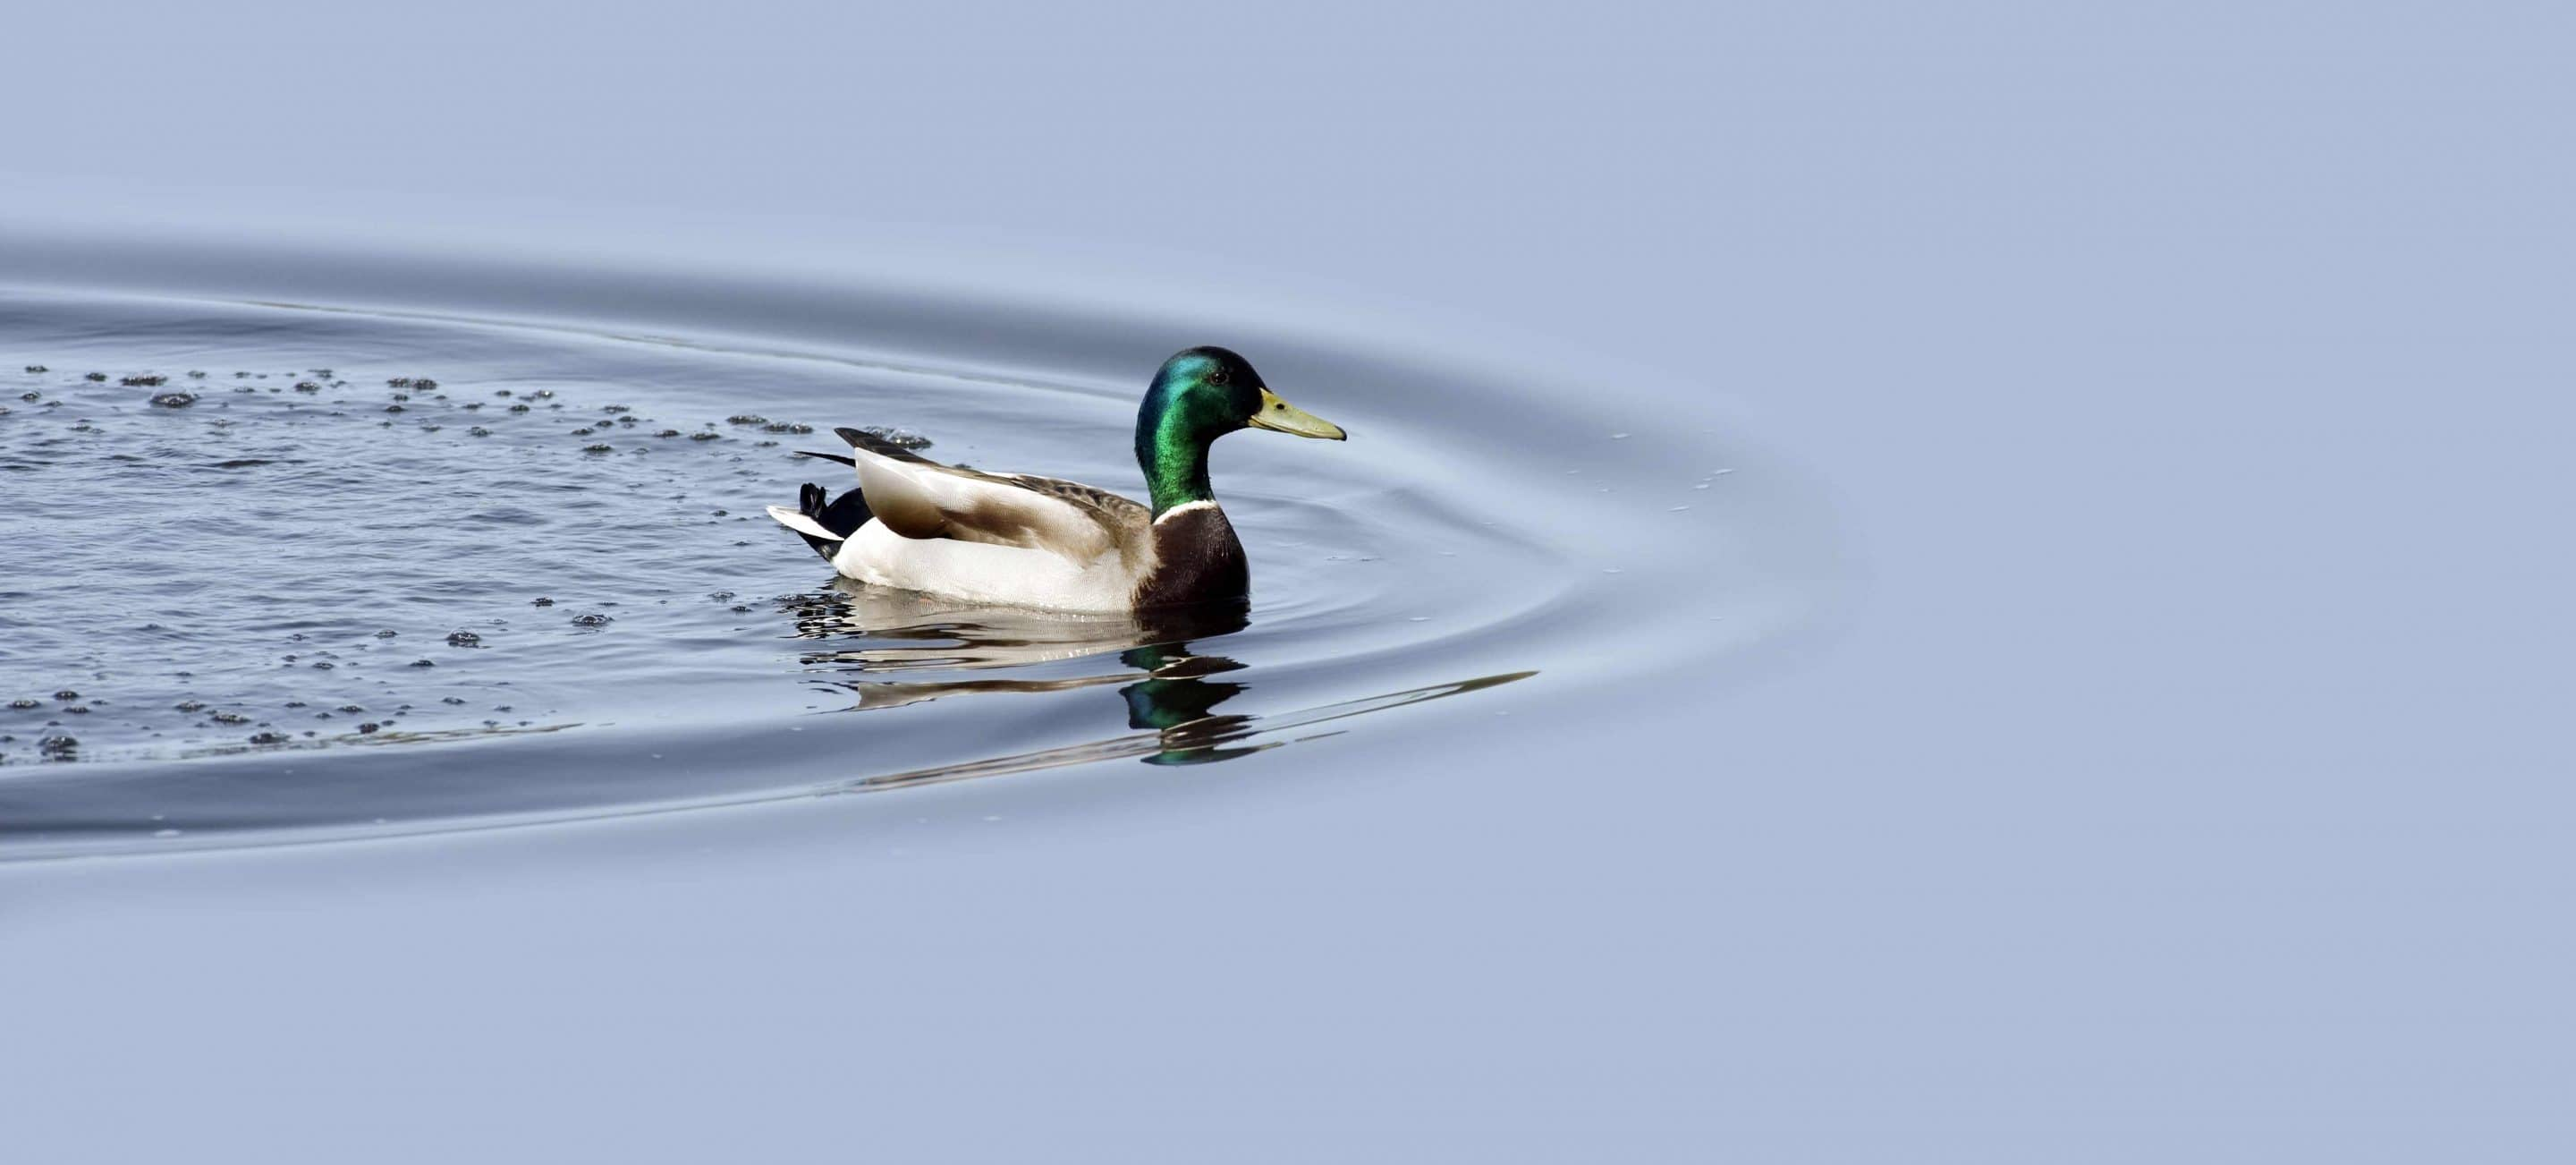 A googd Site Migration is Like a Duck Smoothly, Serenely Gliding But Paddling Like Hell Underneath